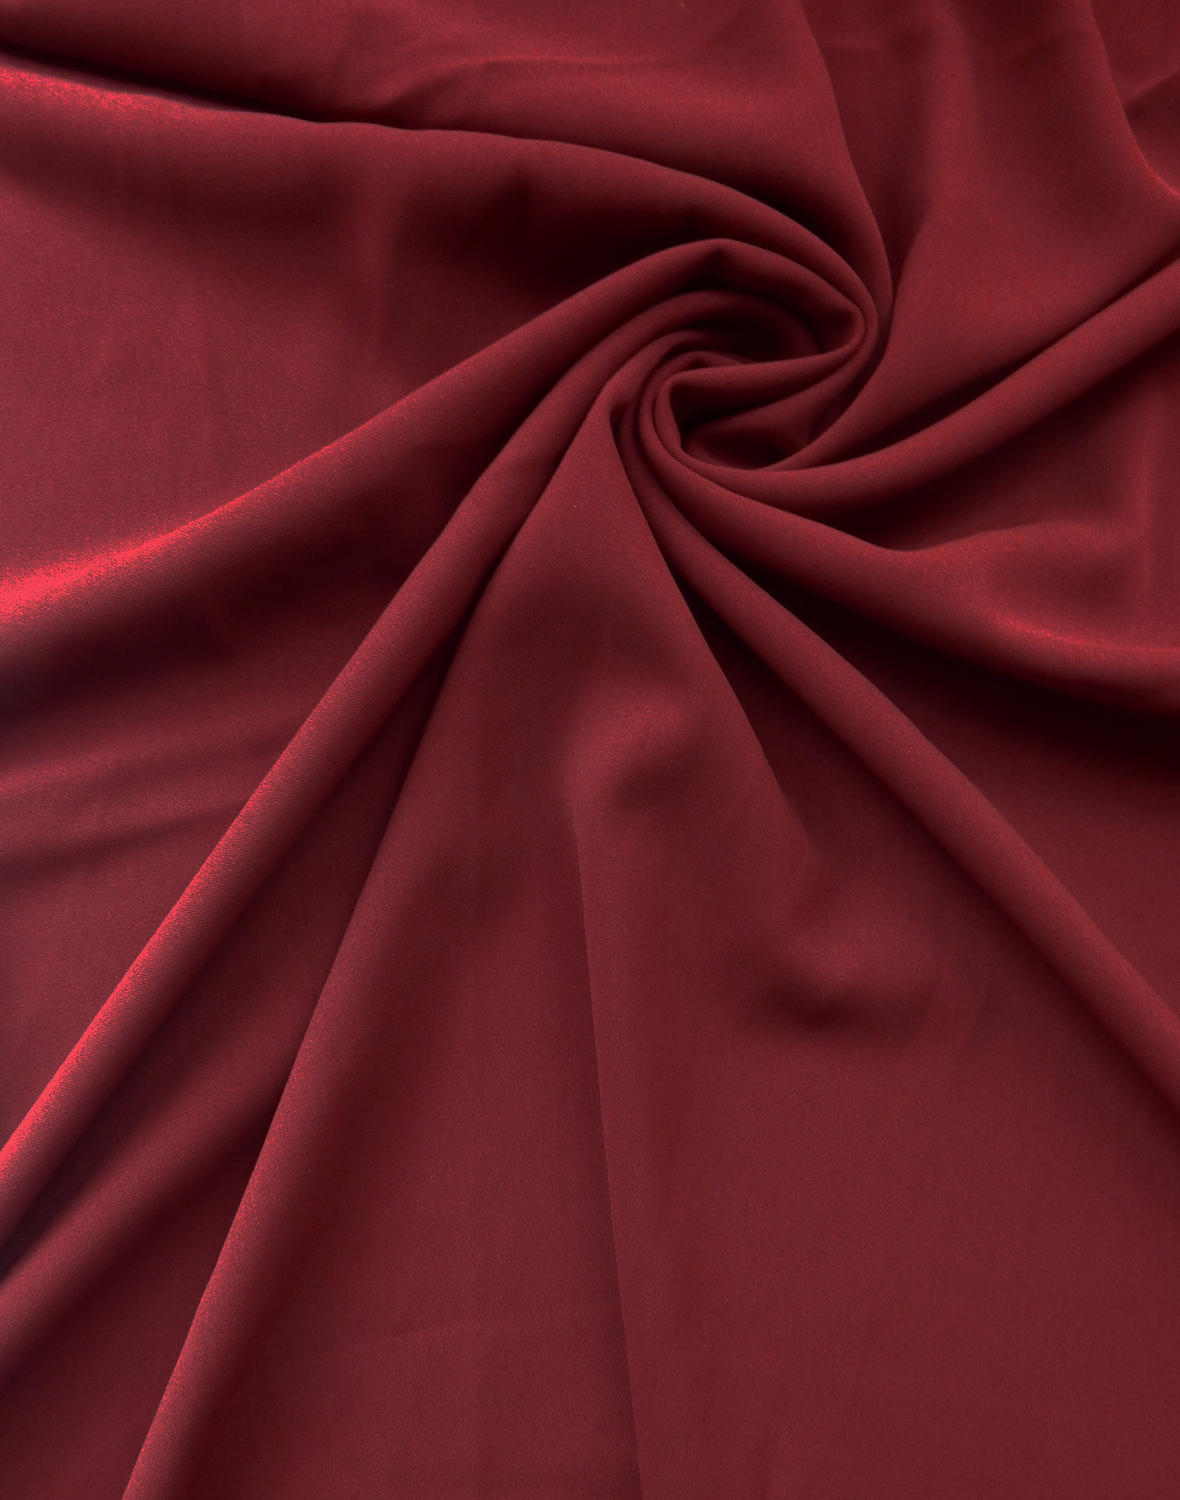 Designer Bordeaux Odessa Stretch Crepe : Texture - Wholesale Apparel Fabric